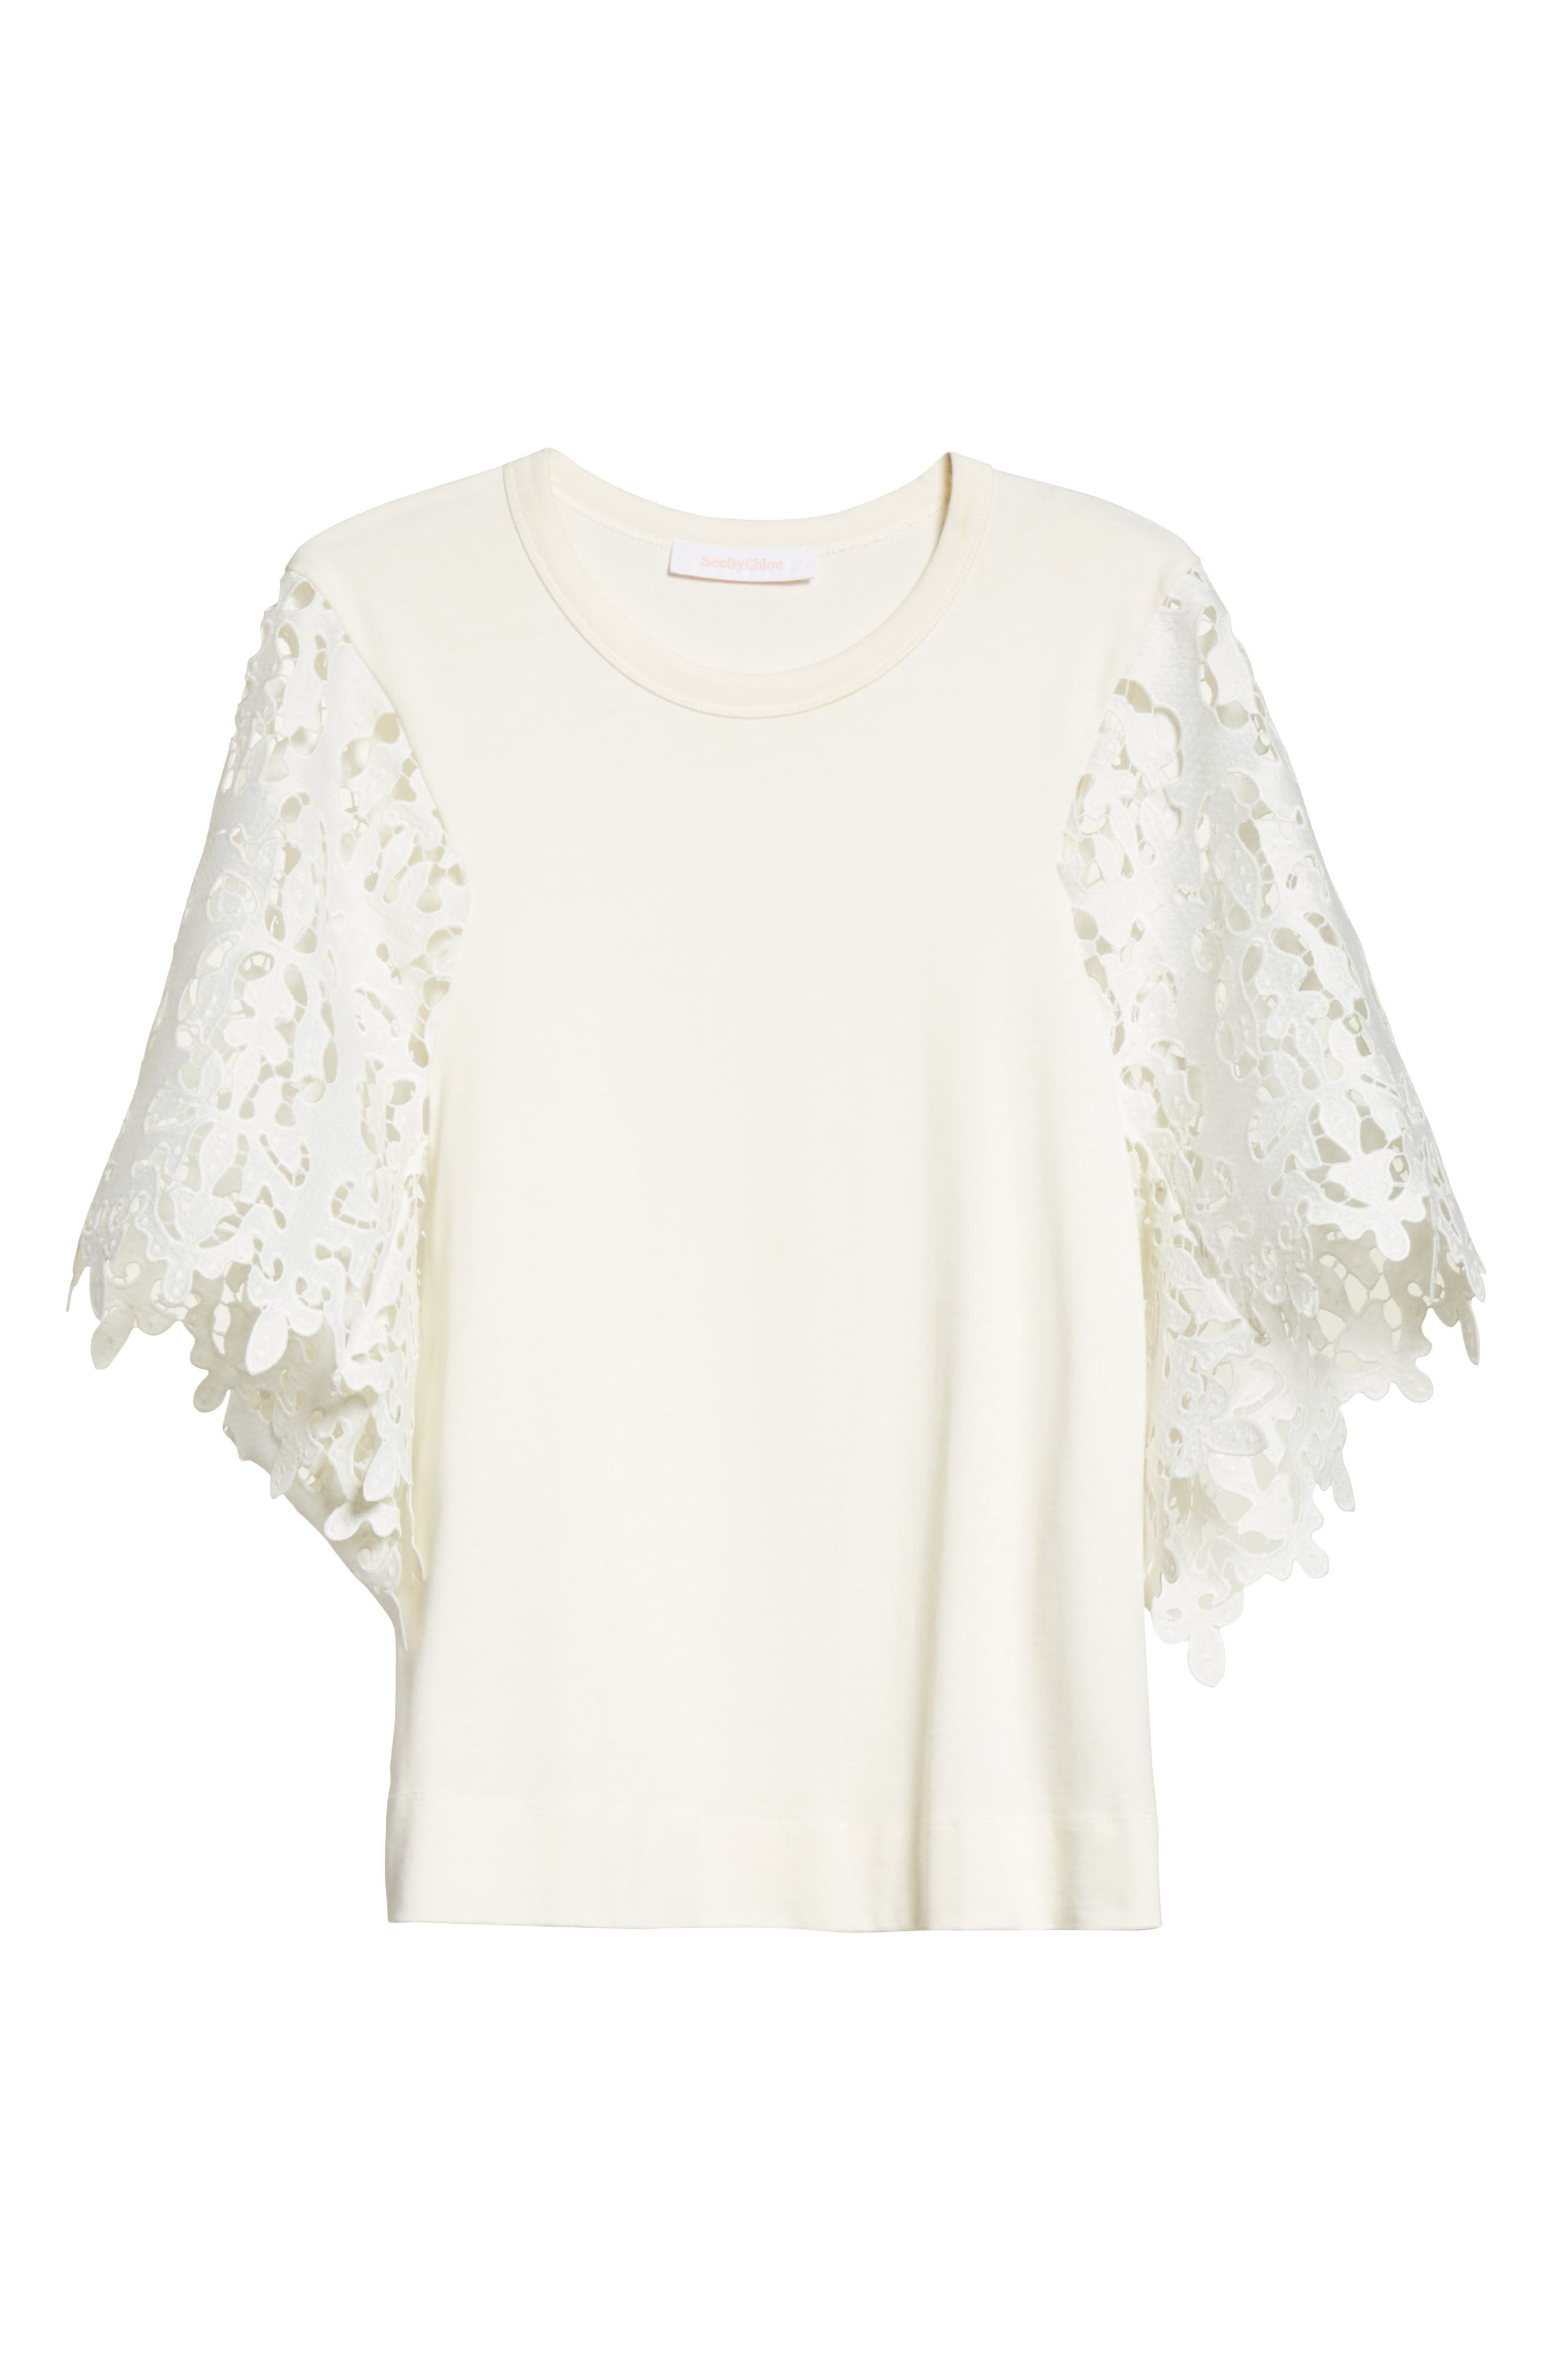 Lace Sleeve Top,                             Alternate thumbnail 6, color,                             Ivory